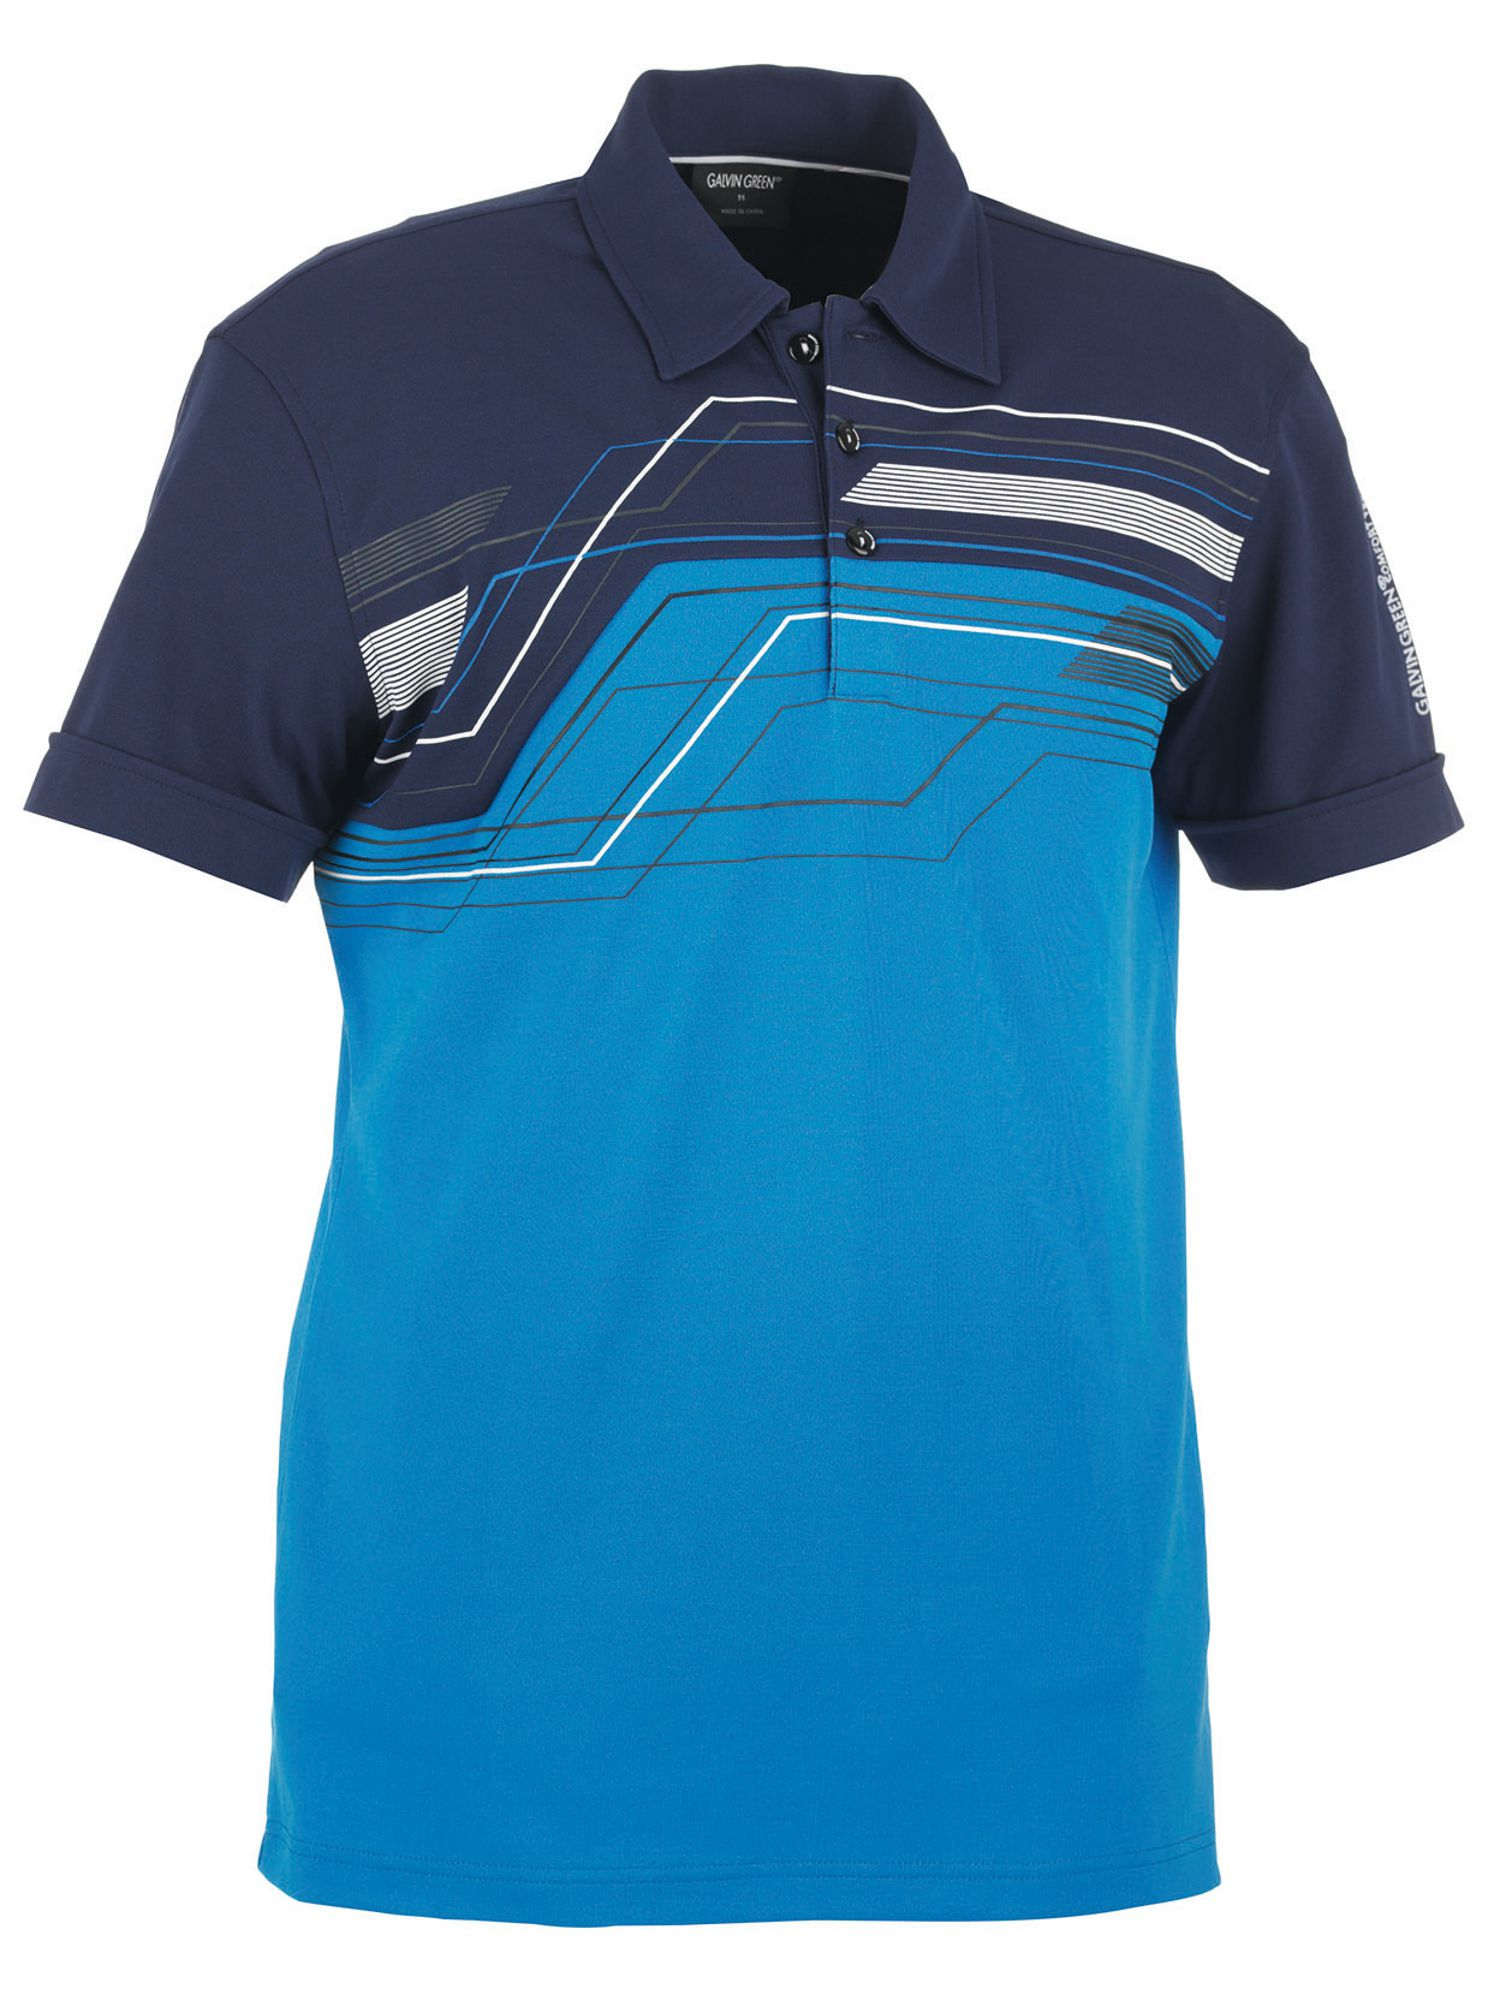 Merlin polo shirt